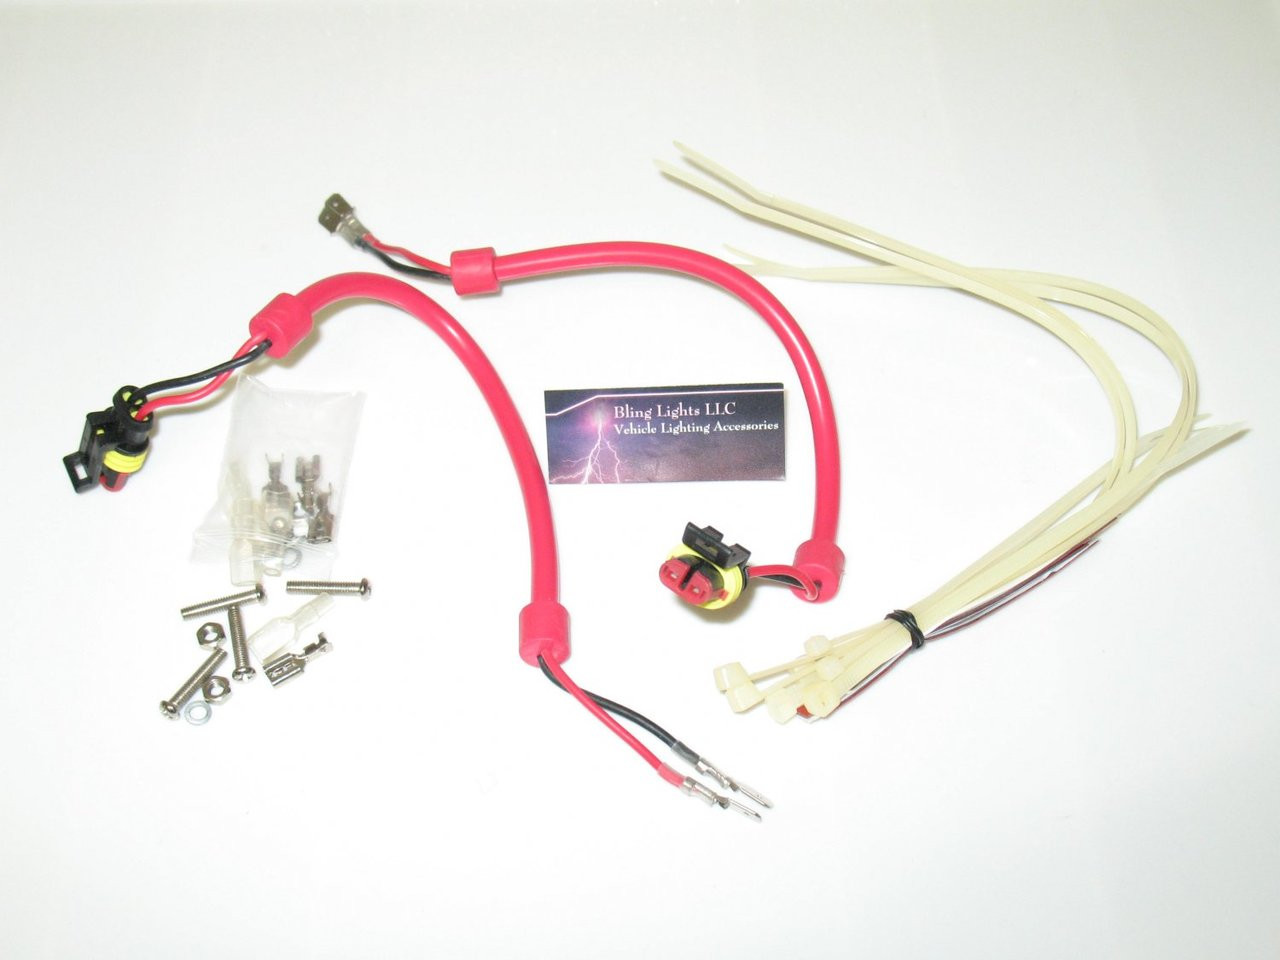 h1 h3 h7 hid conversion kit universal ballast harness wiring accessories blinglights com [ 1280 x 960 Pixel ]